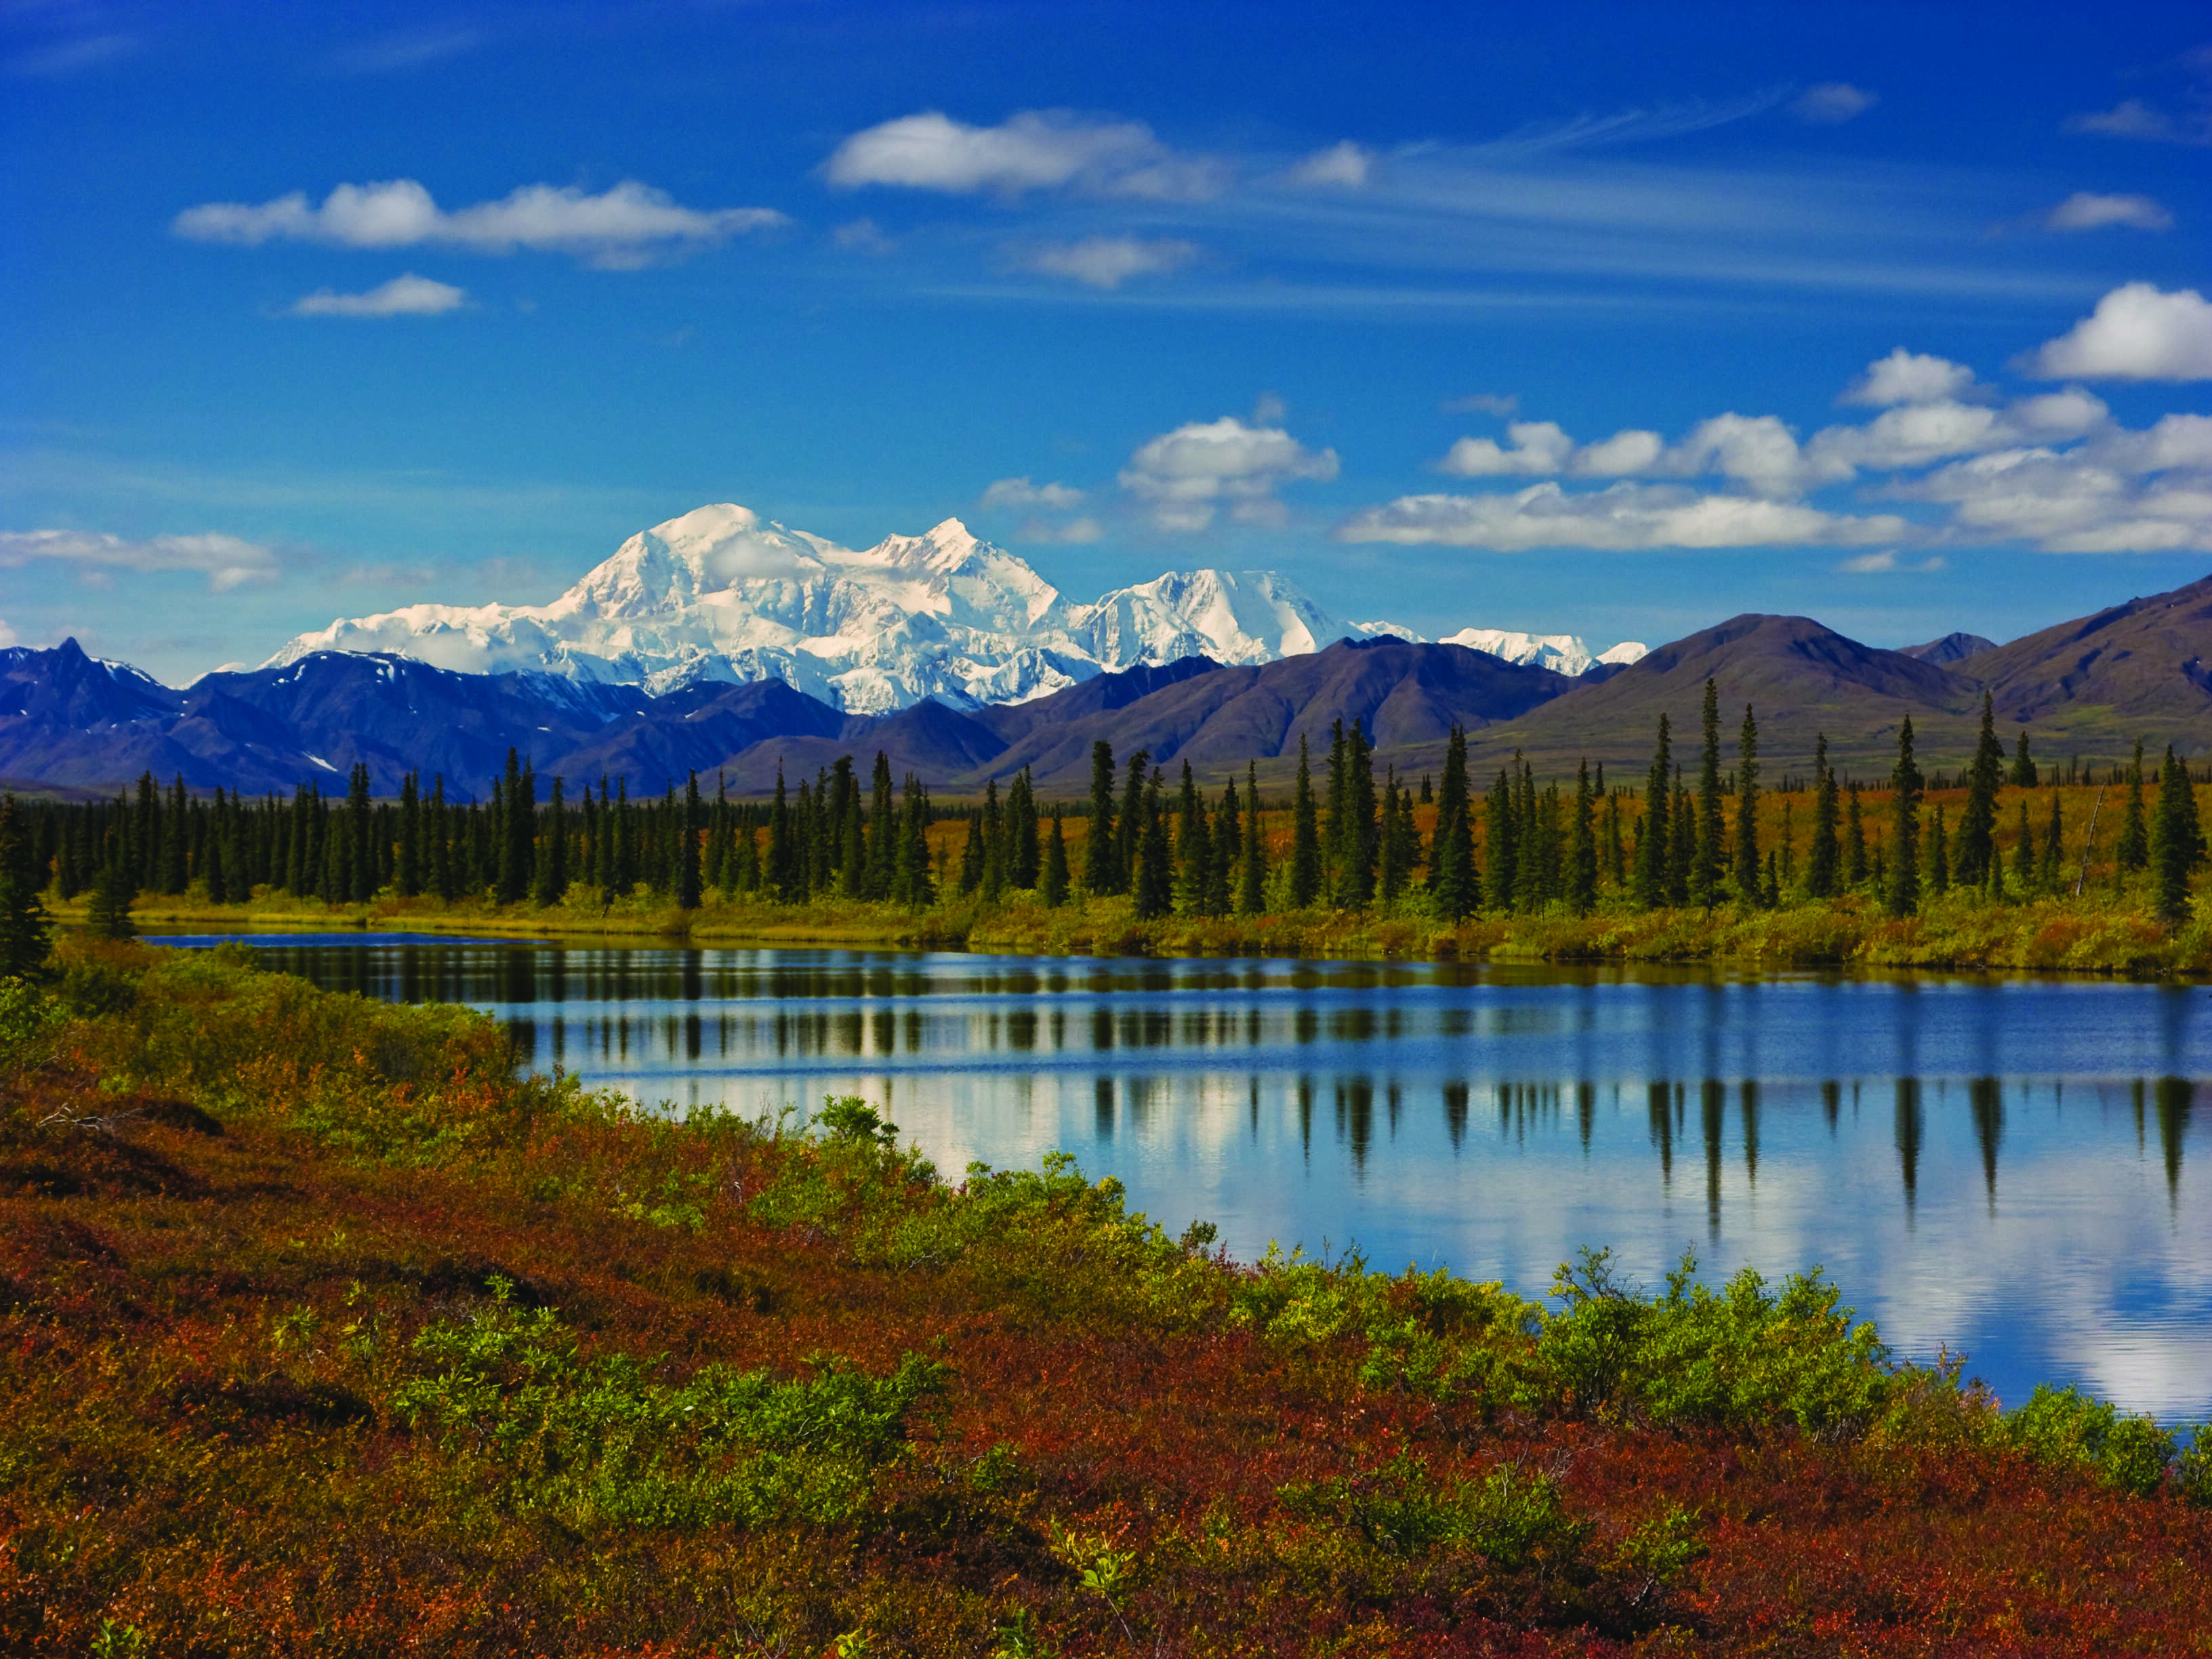 Alaska Discovery Land & Cruise featuring a 7-night Princess Cruise